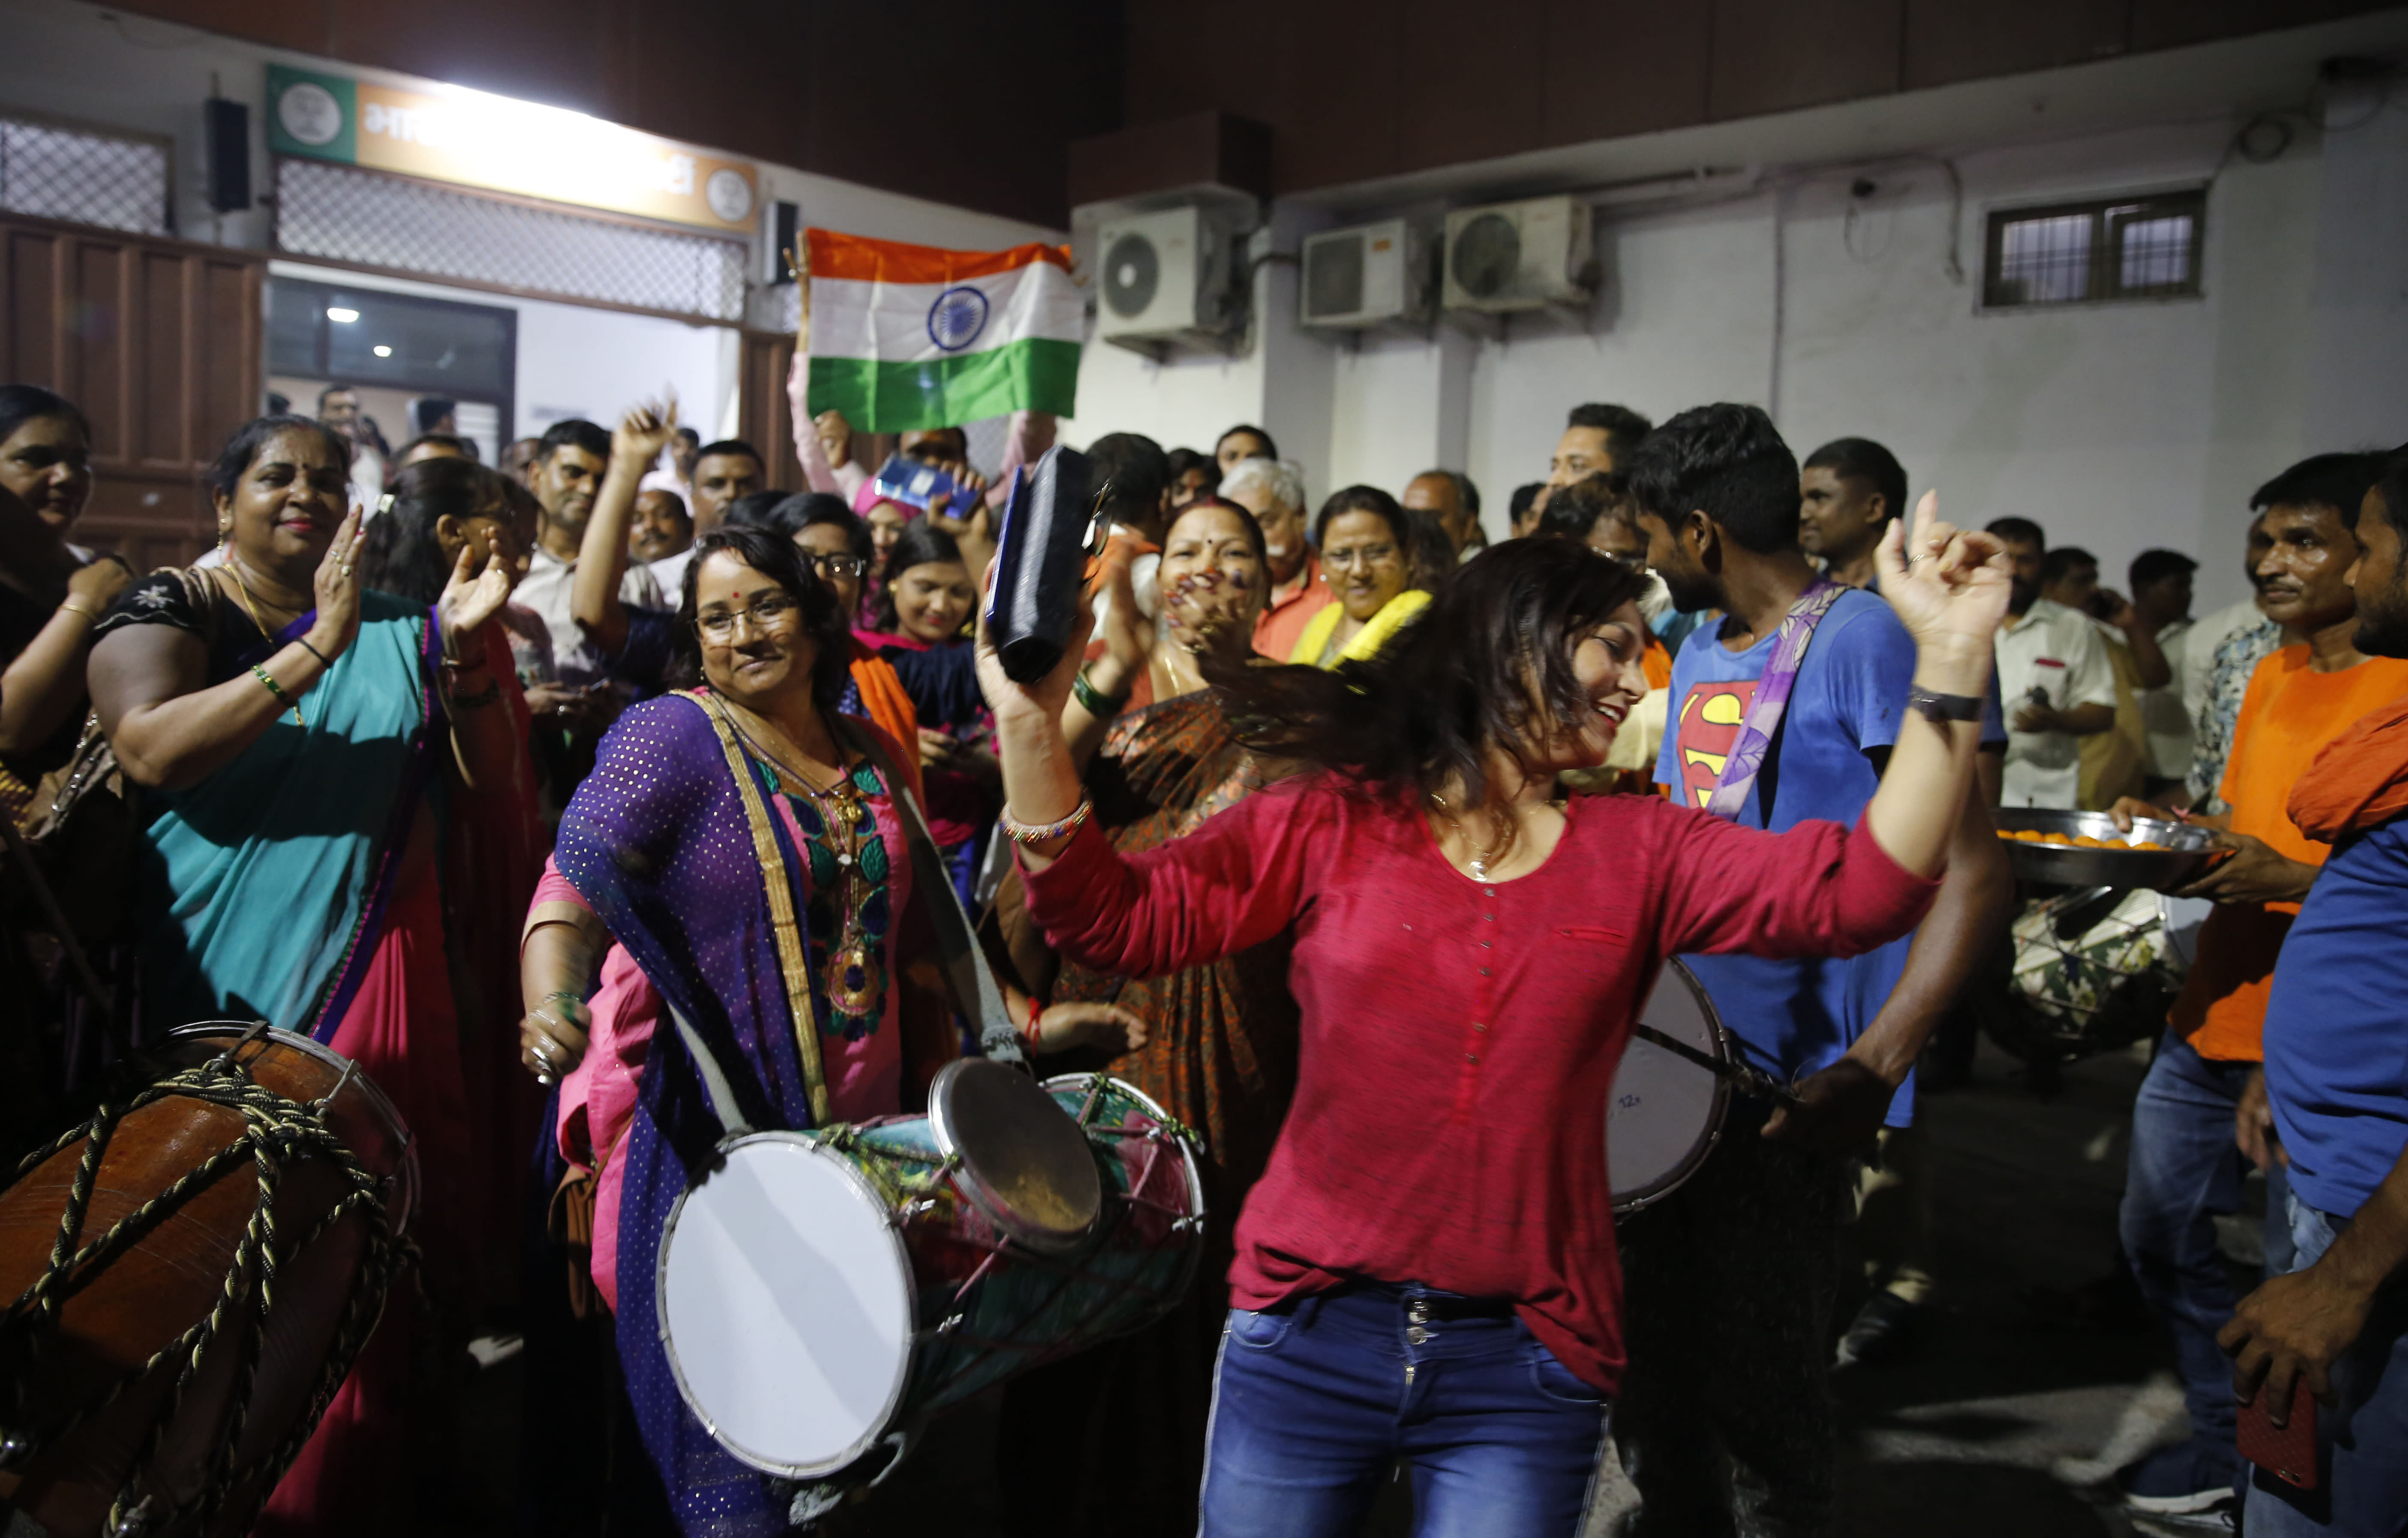 Supporters of India's ruling Bharatiya Janata Party (BJP) celebrate the government revoking Kashmir's special status, in Lucknow, India, Tuesday, Aug. 6, 2019. Indian lawmakers passed a bill Tuesday that strips the statehood from the Indian-administered portion of Muslim-majority Kashmir amid an indefinite security lockdown in the disputed Himalayan territory, actions that neighboring Pakistan warned could lead to war. (AP Photo/Rajesh Kumar Singh)